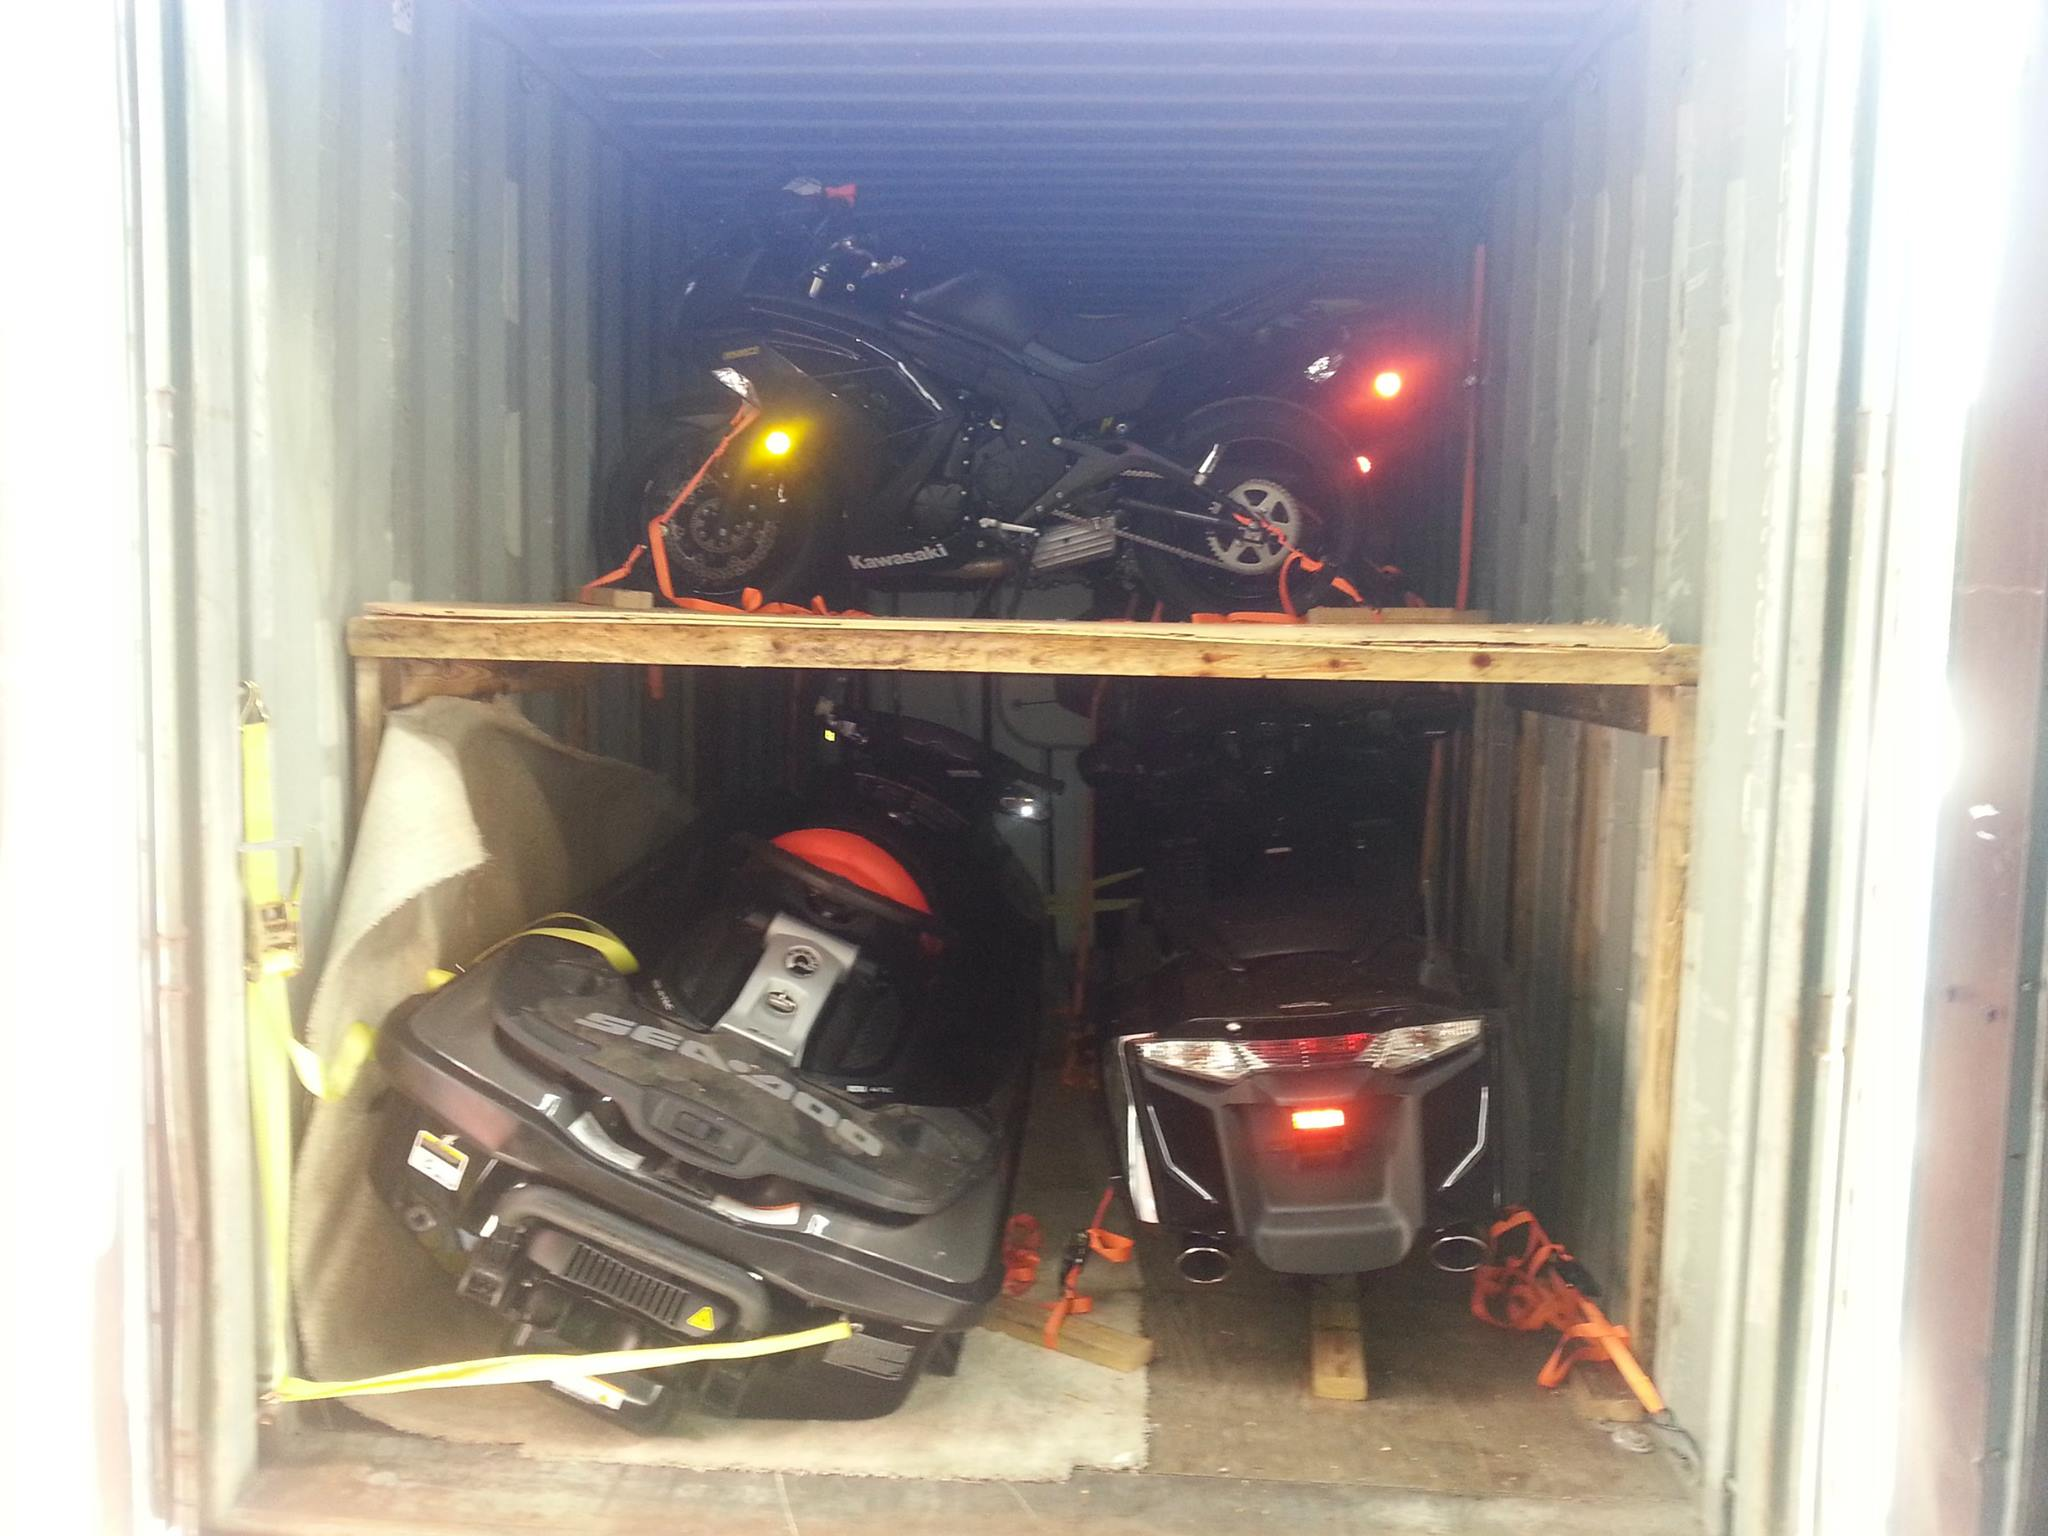 loading motorcycles in 40 foot container to egypt